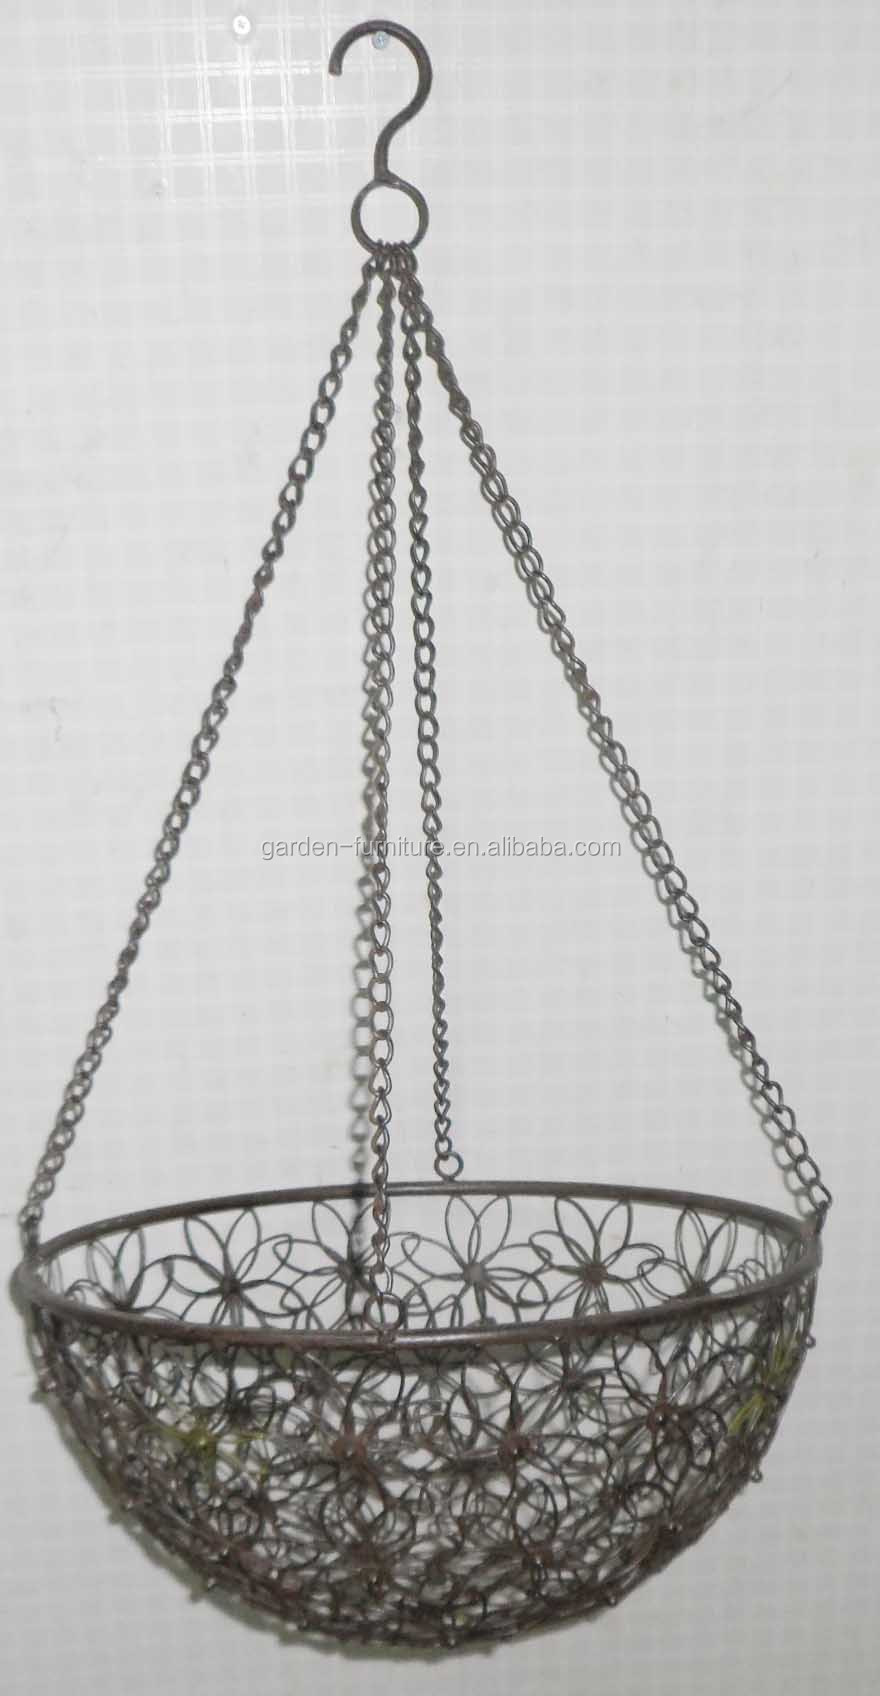 Decorative Hanging Flower Baskets : Handicraft decorative metal planter fruit bowl wrought